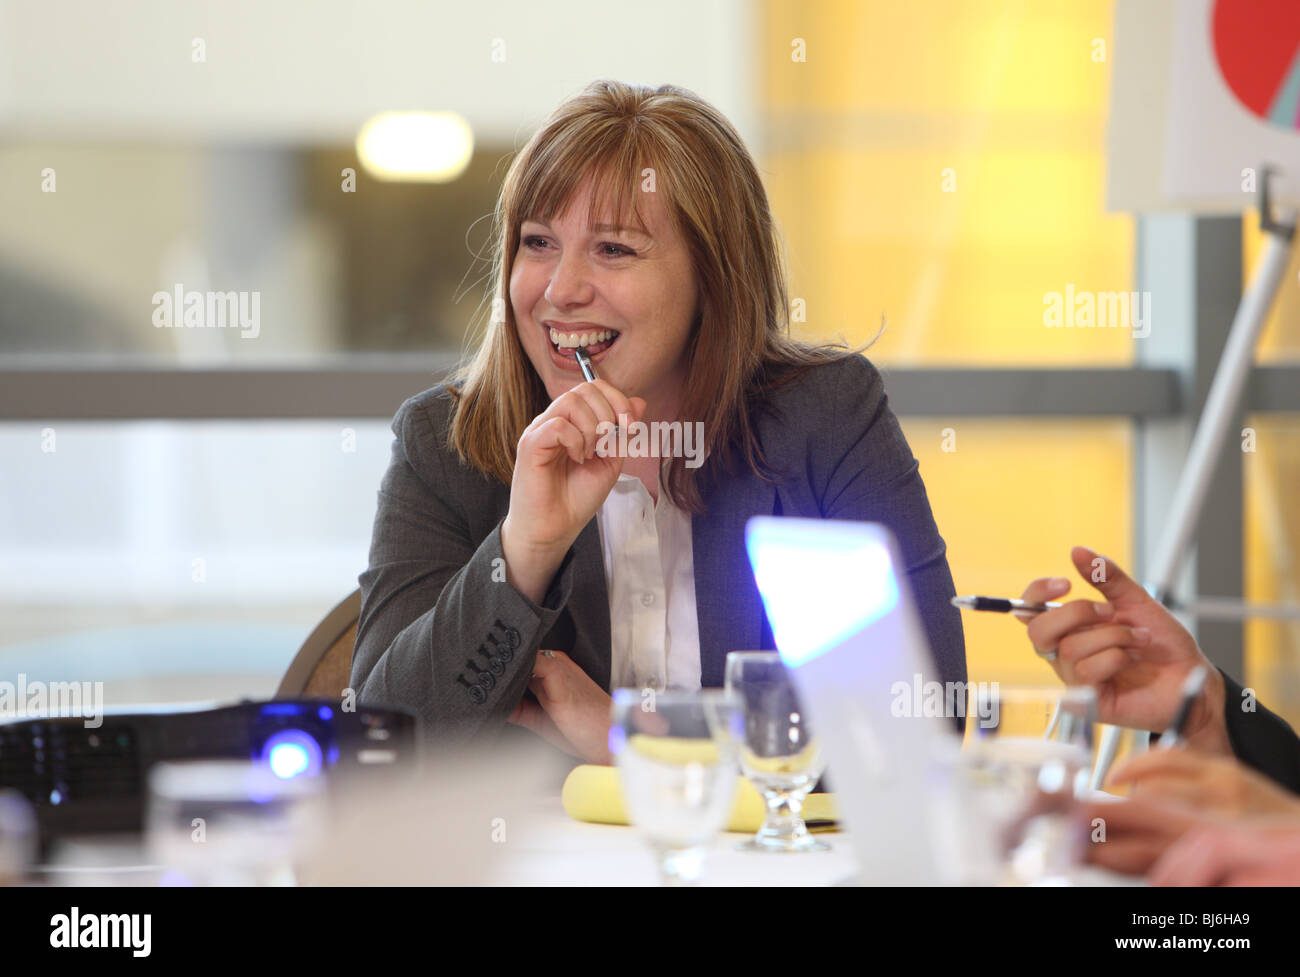 Business woman smiles in board room meeting - Stock Image